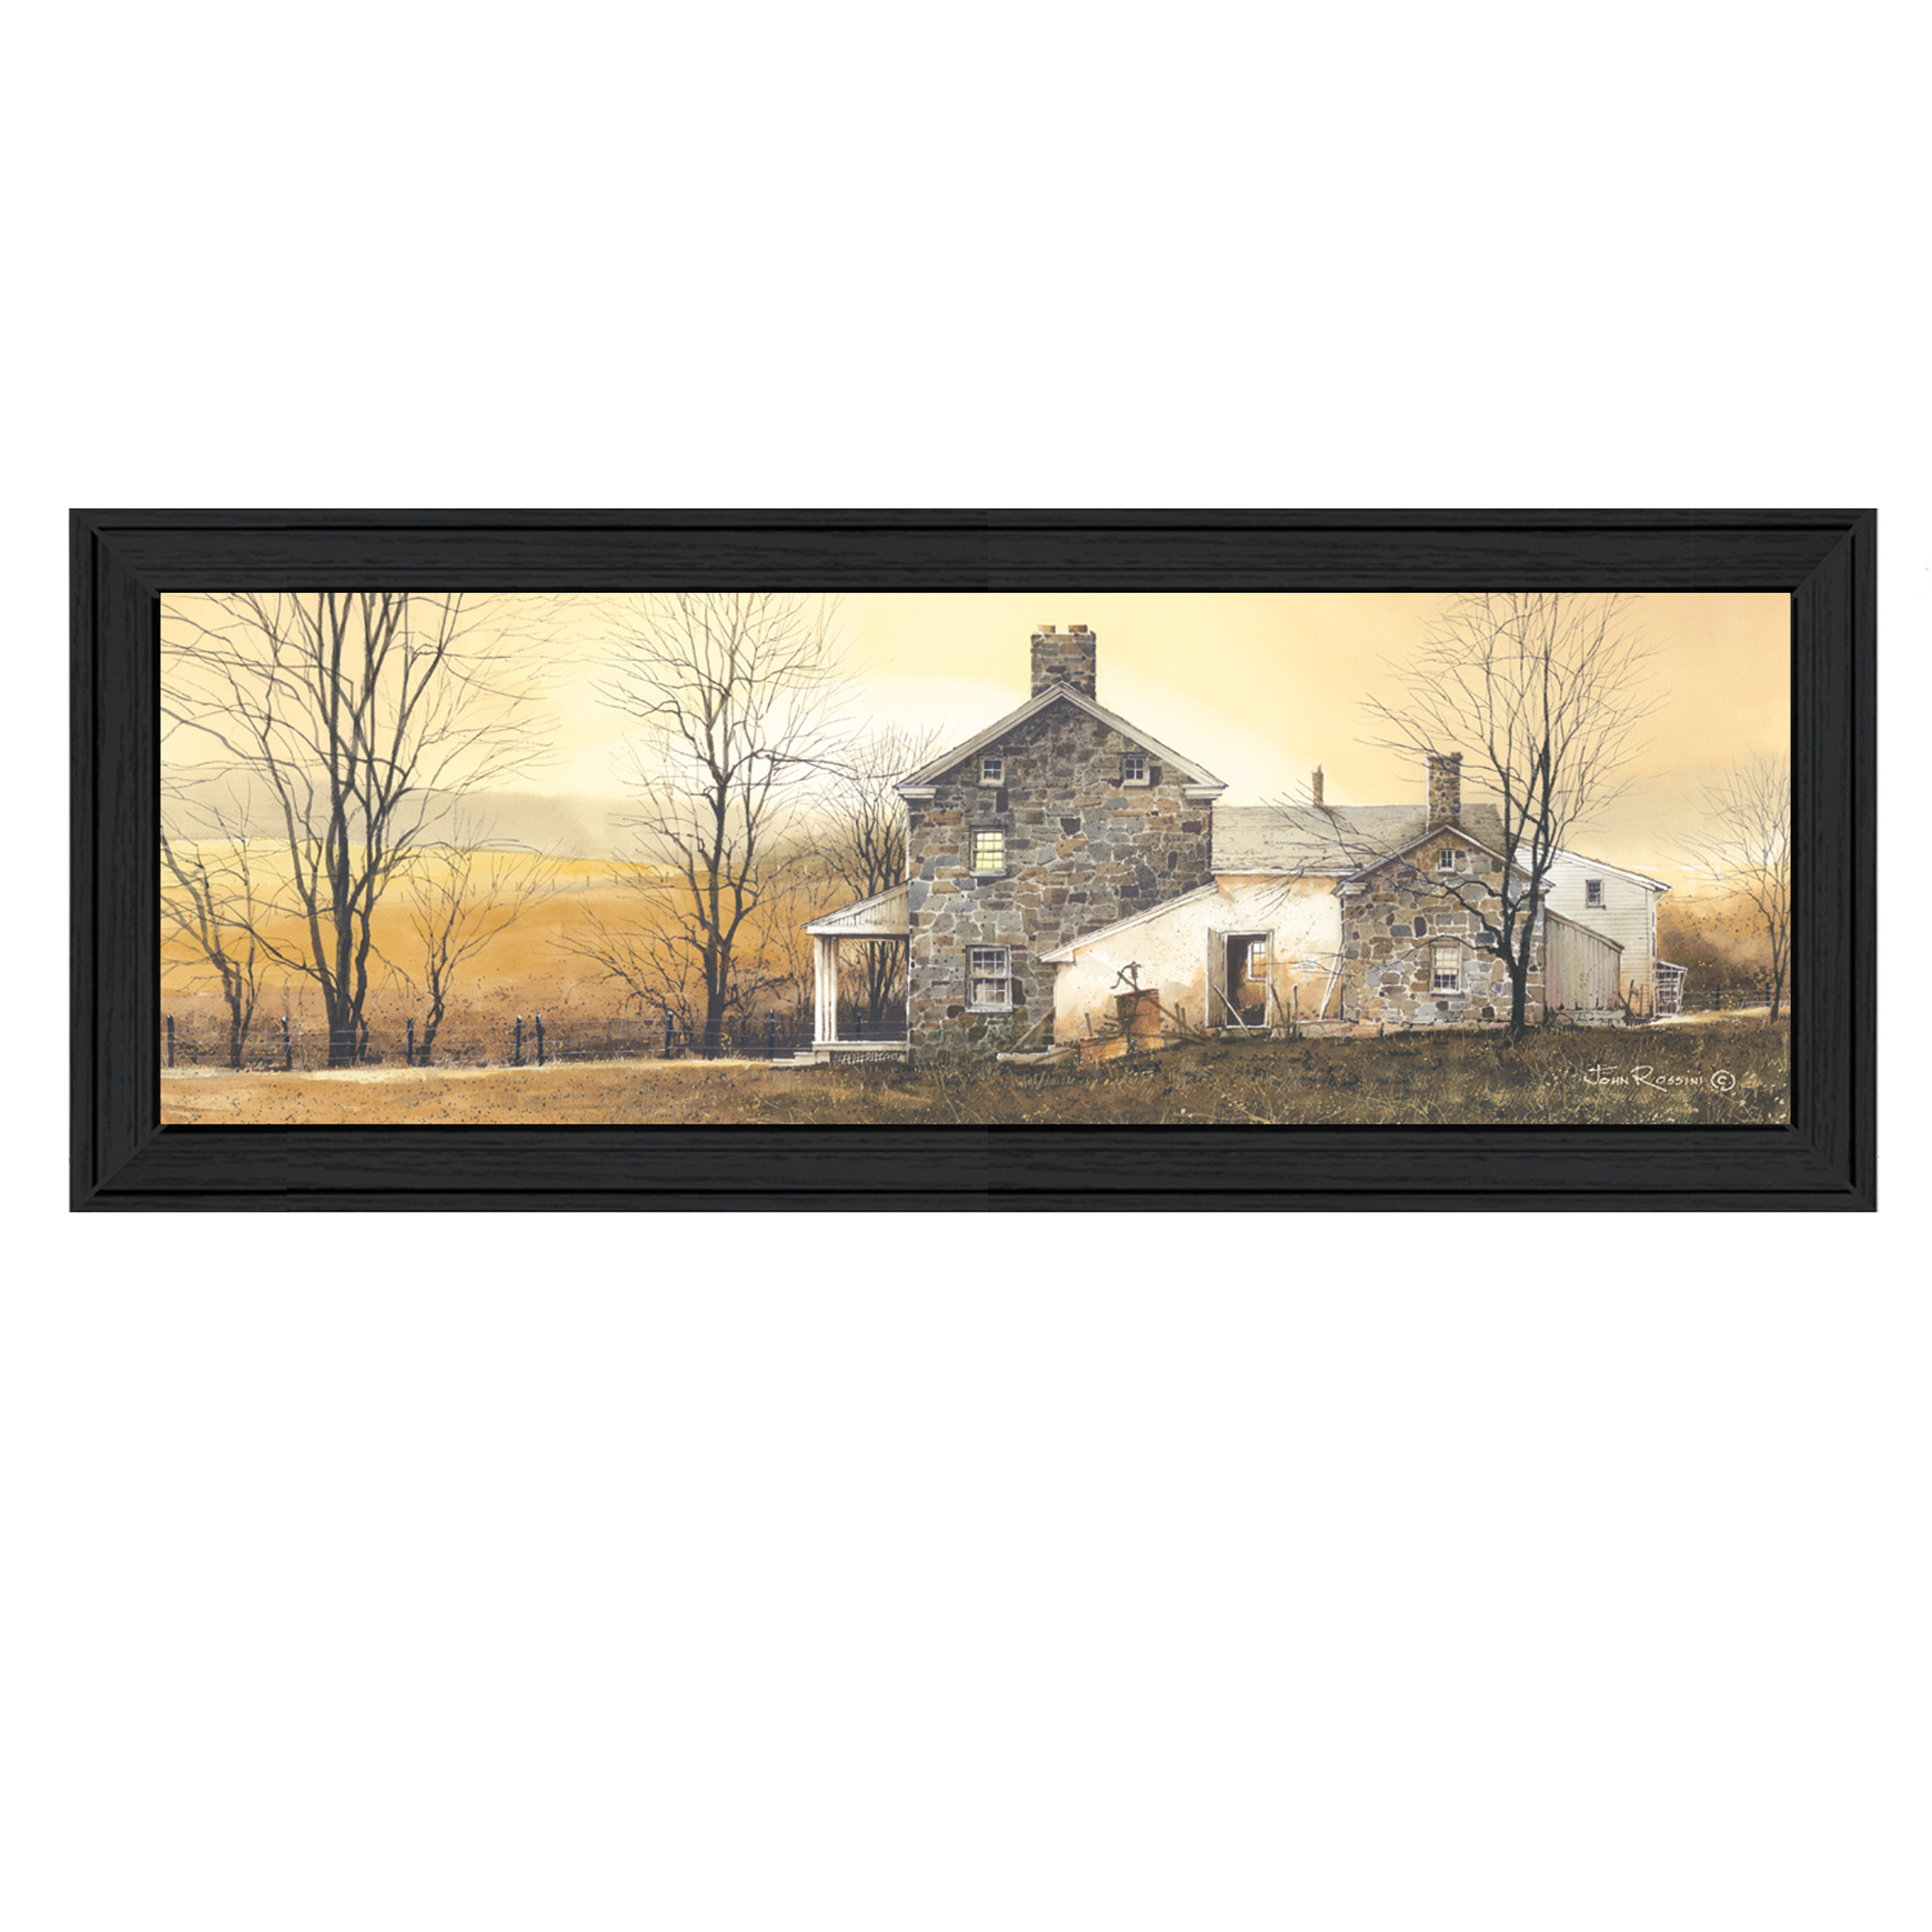 "Jr206-405""a New Day"" is a 21"" x 9"" black framed print. This artwork features a farm house and dawn. This totally American Made wall decor item features an attractive frame, a textured canvas like finish so no glass is necessary and is ready to hang. * Made in the USA * Women Owned (Wbe) * Textured Artwork with a 'rolled on' acid free acrylic coating to create a canvas painting effect. No glass is necessary. * UV protectant coating protects artwork from fading. * MDF moulding adds natural beauty to the framed art. Frame is keyholed for ease of hanging."